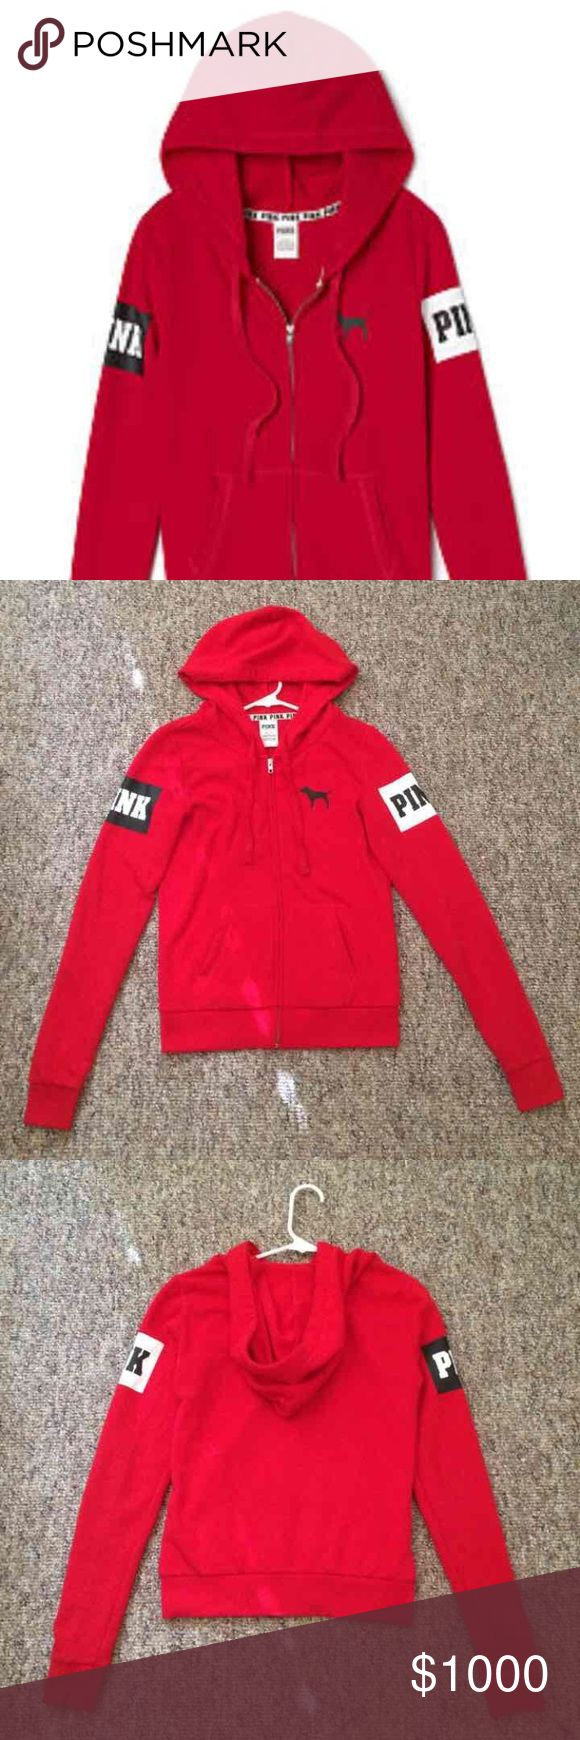 ISO Victoria's Secret Pink red zip up hoodie M In search of this red Victoria's Secret Pink zip up hoodie size medium! Not for sale! PINK Victoria's Secret Tops Sweatshirts & Hoodies